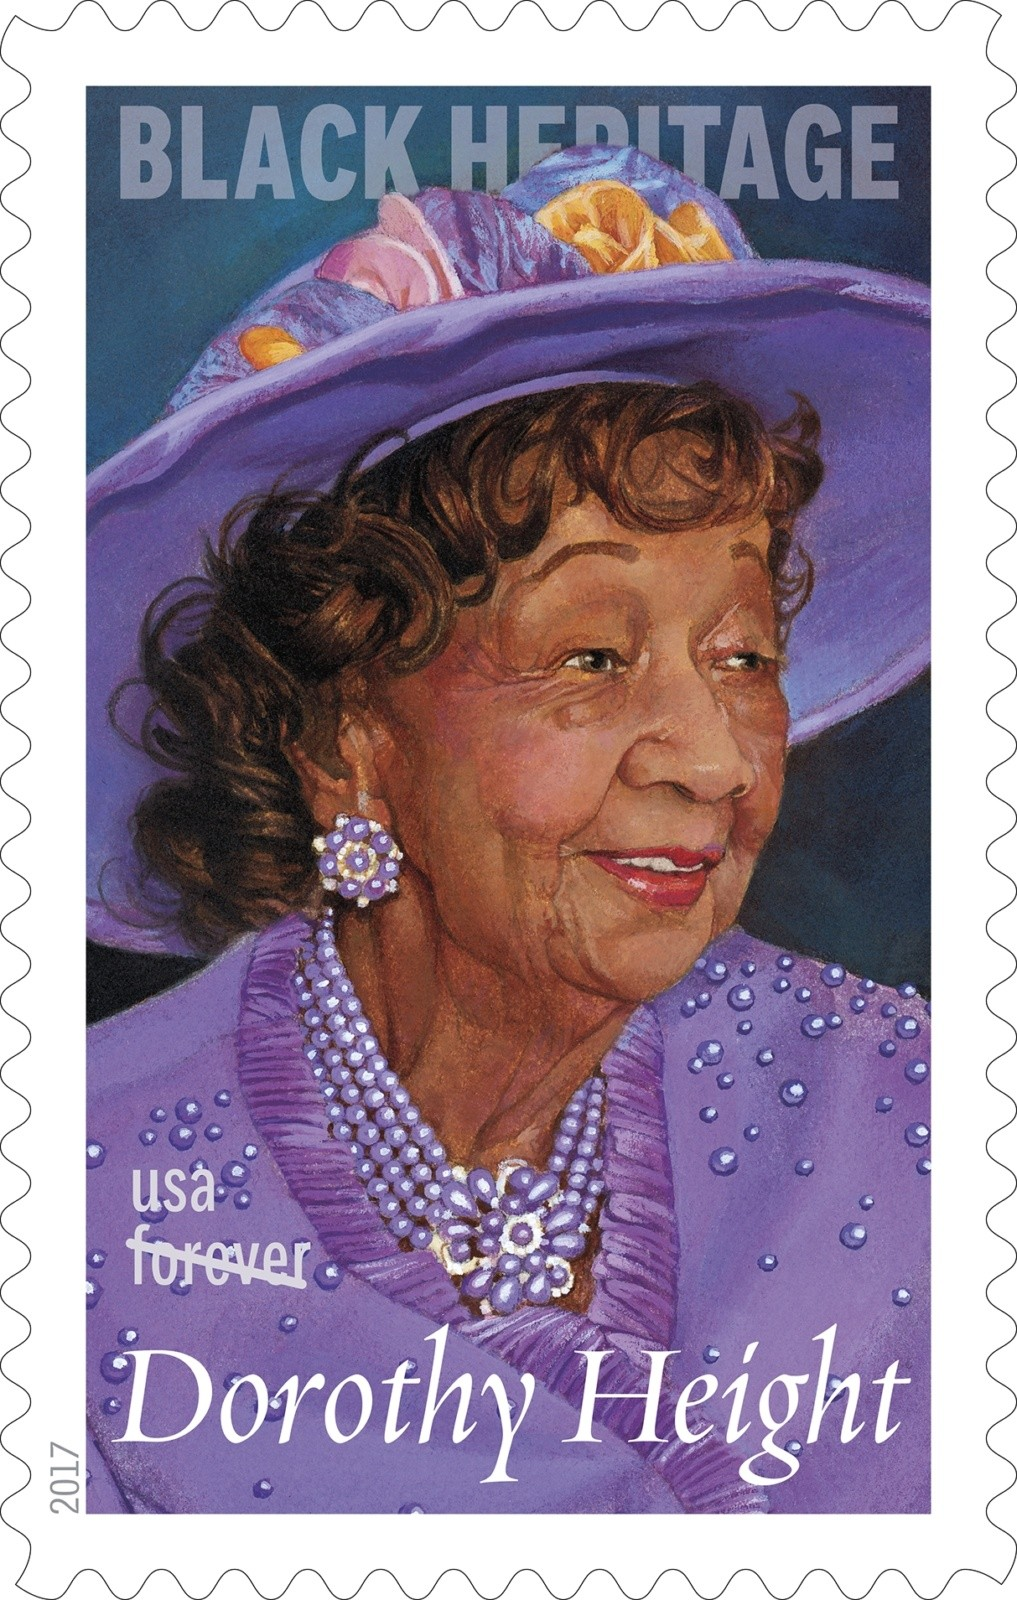 Postal Service Showcases more 2017 Stamps